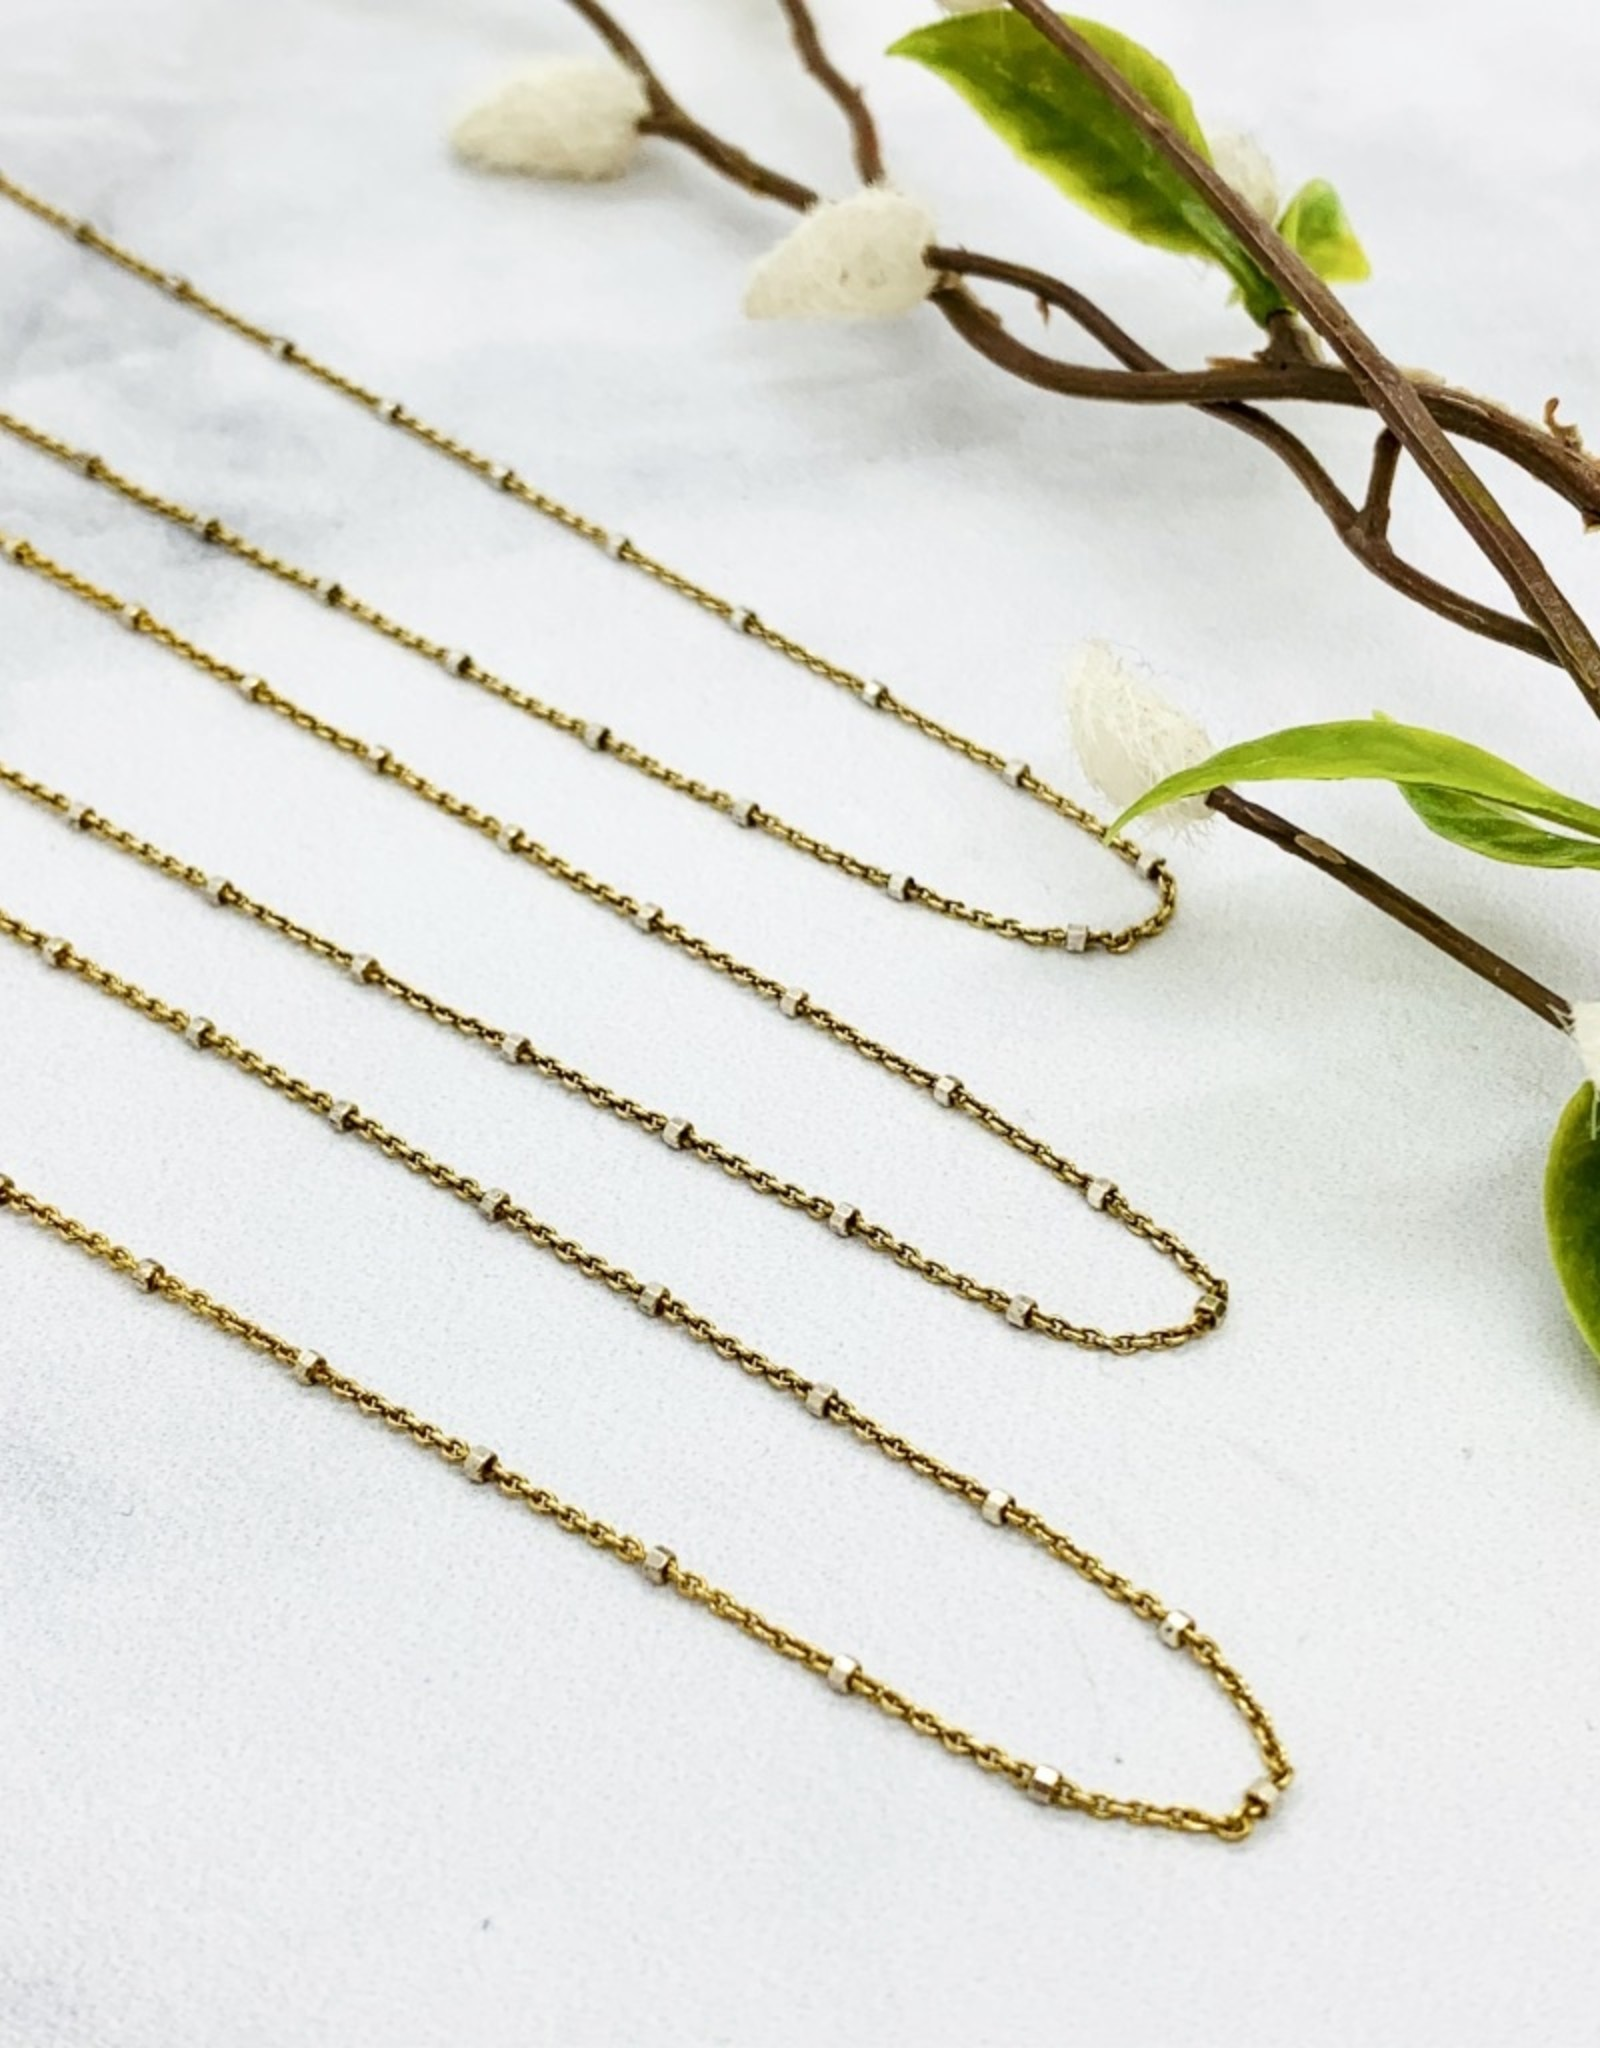 Gold Plated Sterling Chain with Sterling Bead